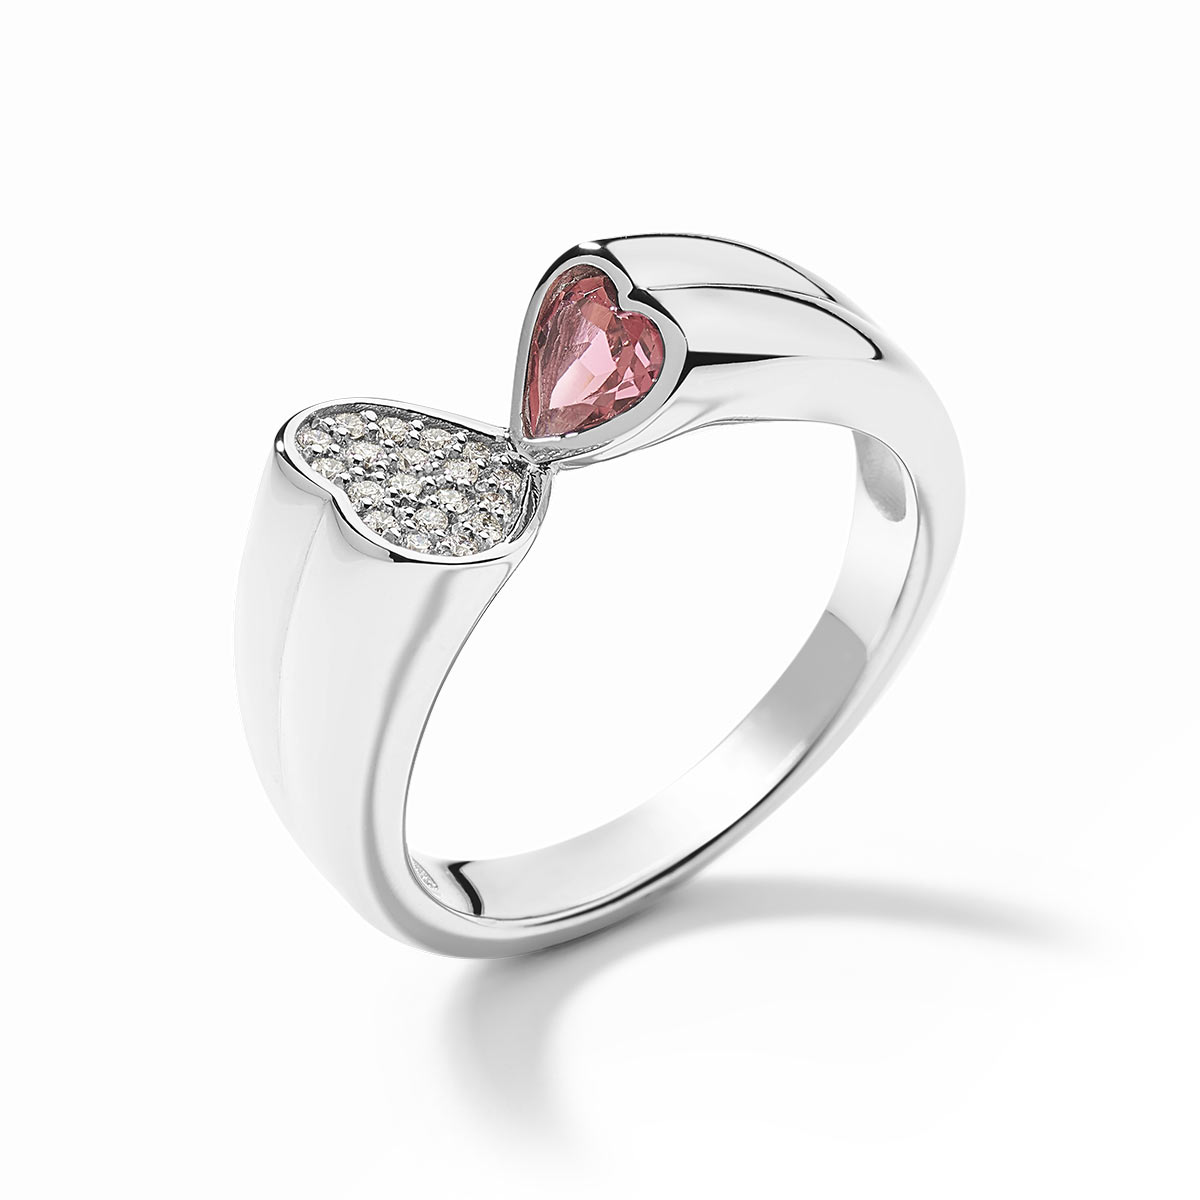 Bague or blanc 750 tourmaline rose diamants